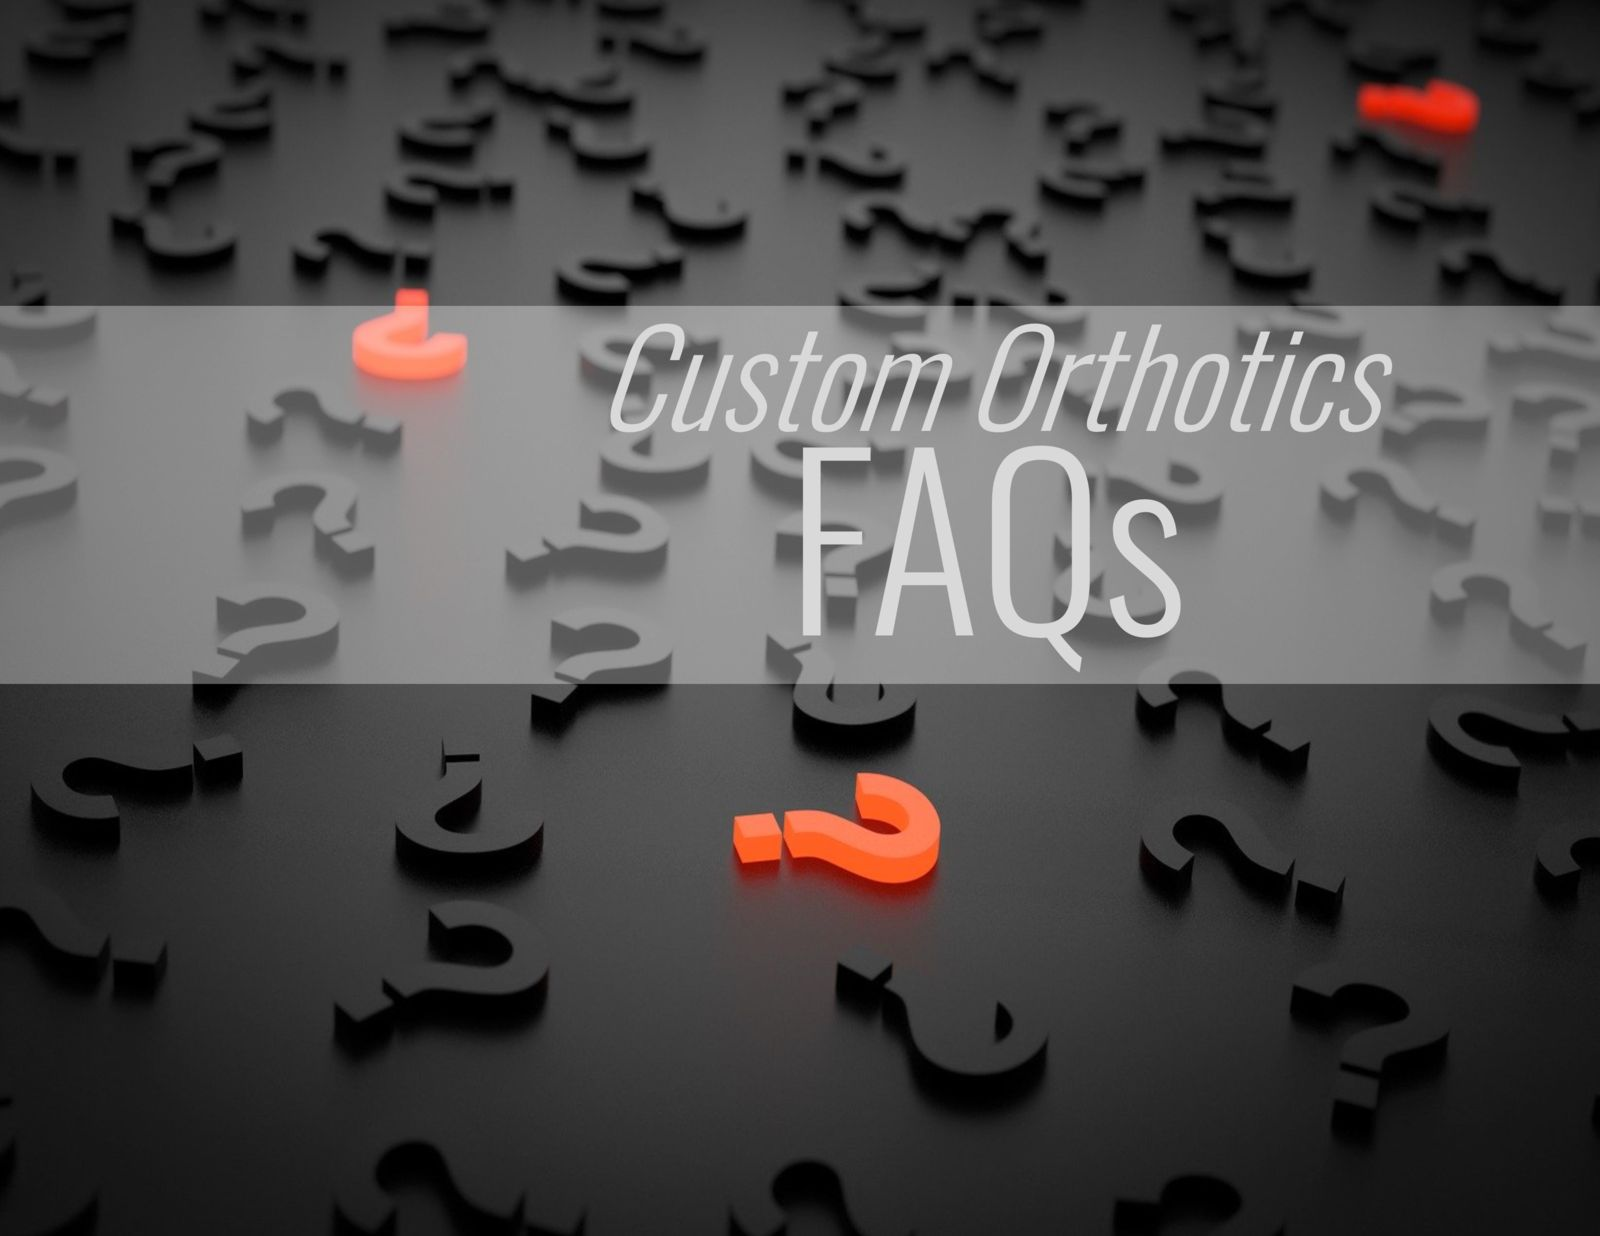 question marks with the words: Custom Orthotics FAQs